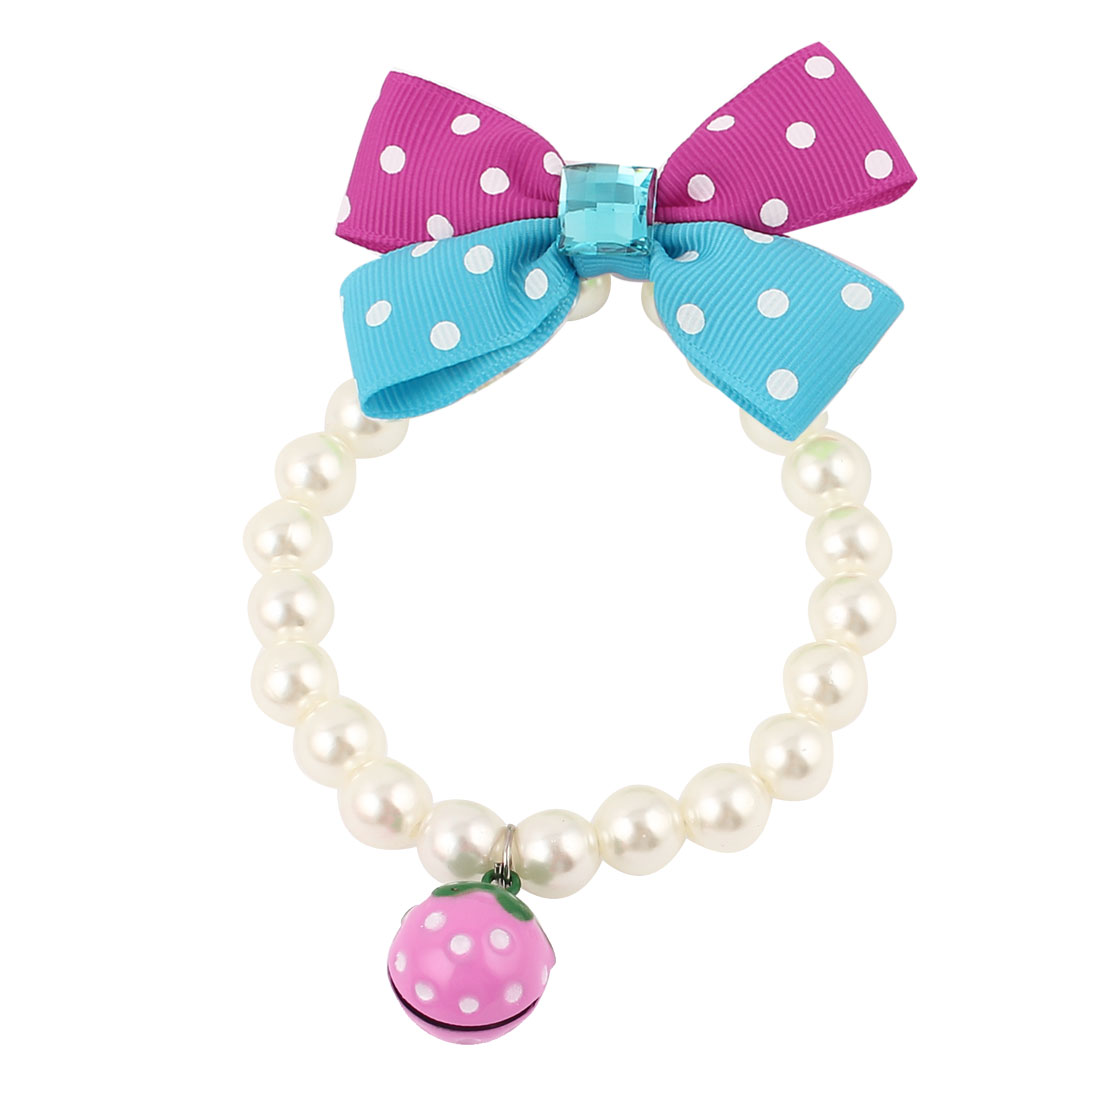 Metal Bell Pendant Bowtie Accent Pet Dog Plastic Beads Imitation Pearls Collar Necklace White XS